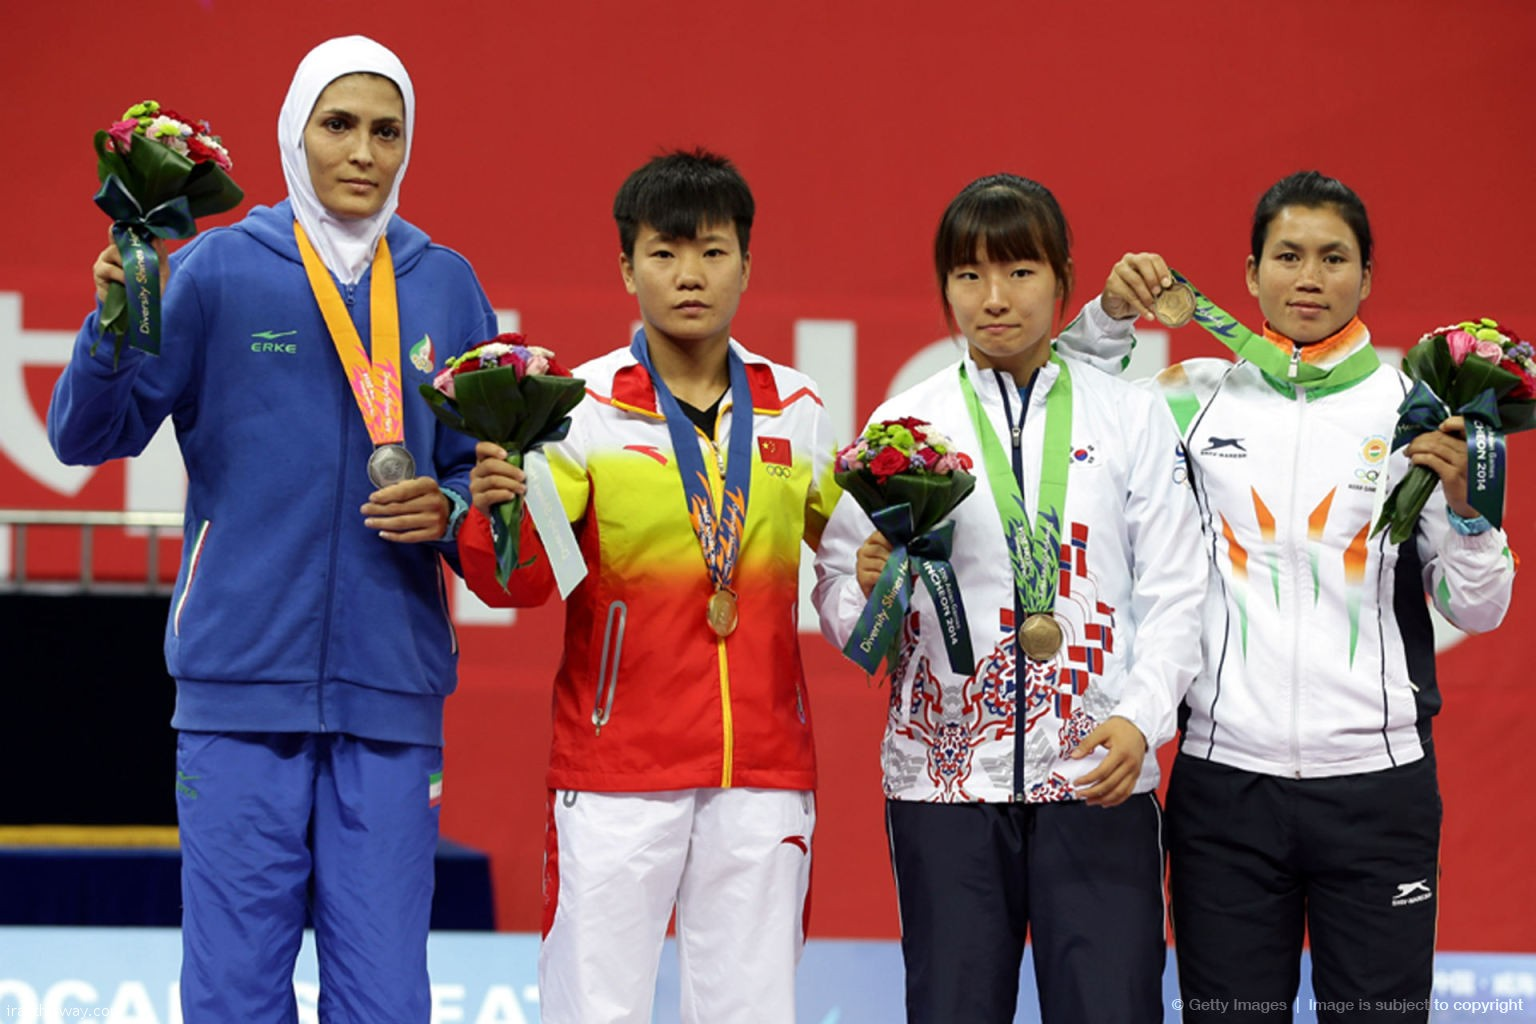 Iran's girl wins gold medal in Asian Wushu championship